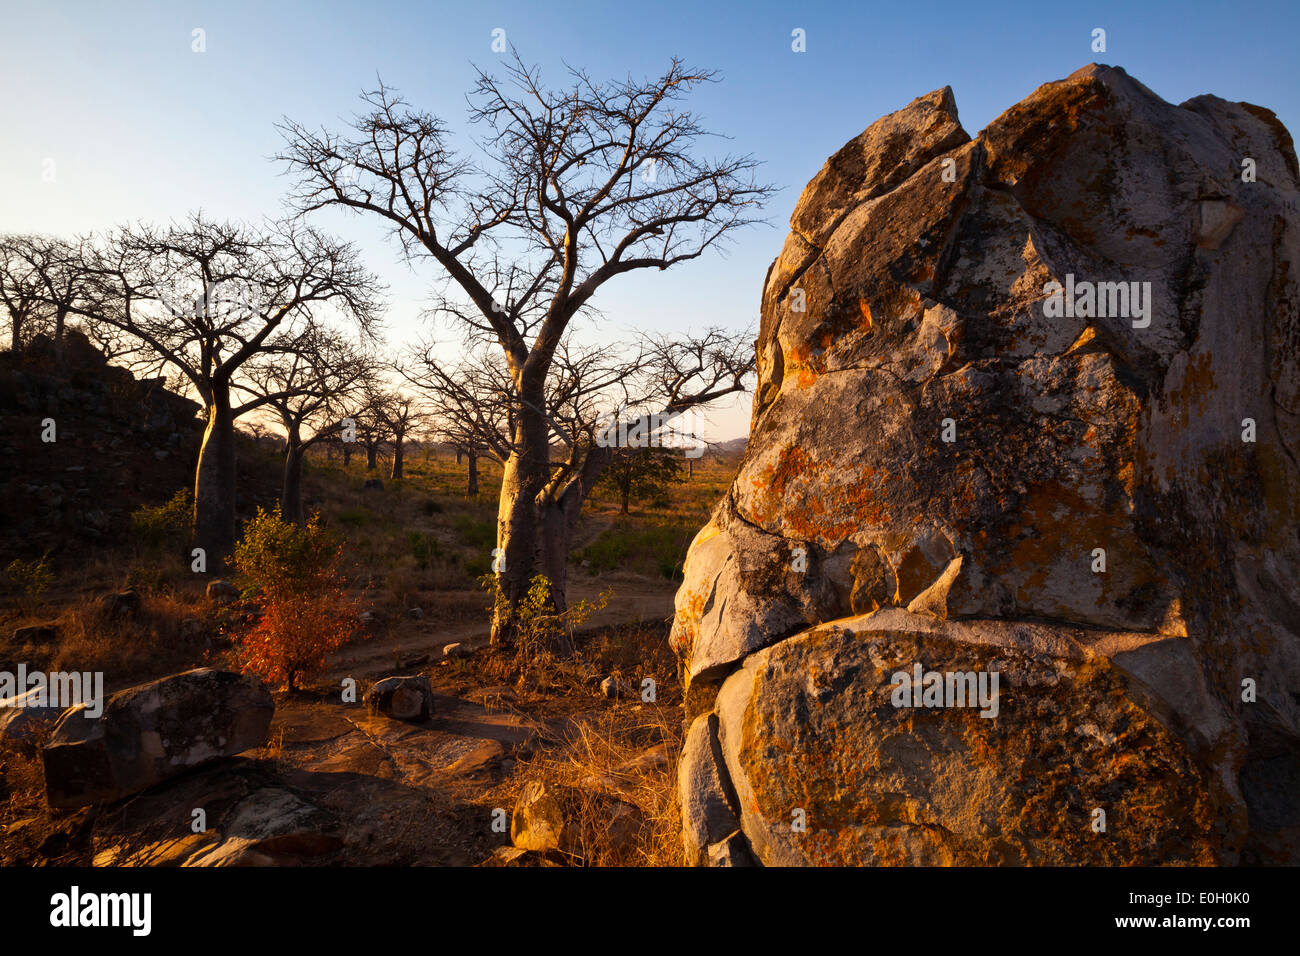 Evening scene with a rock and baobab trees, Malawi, Africa - Stock Image